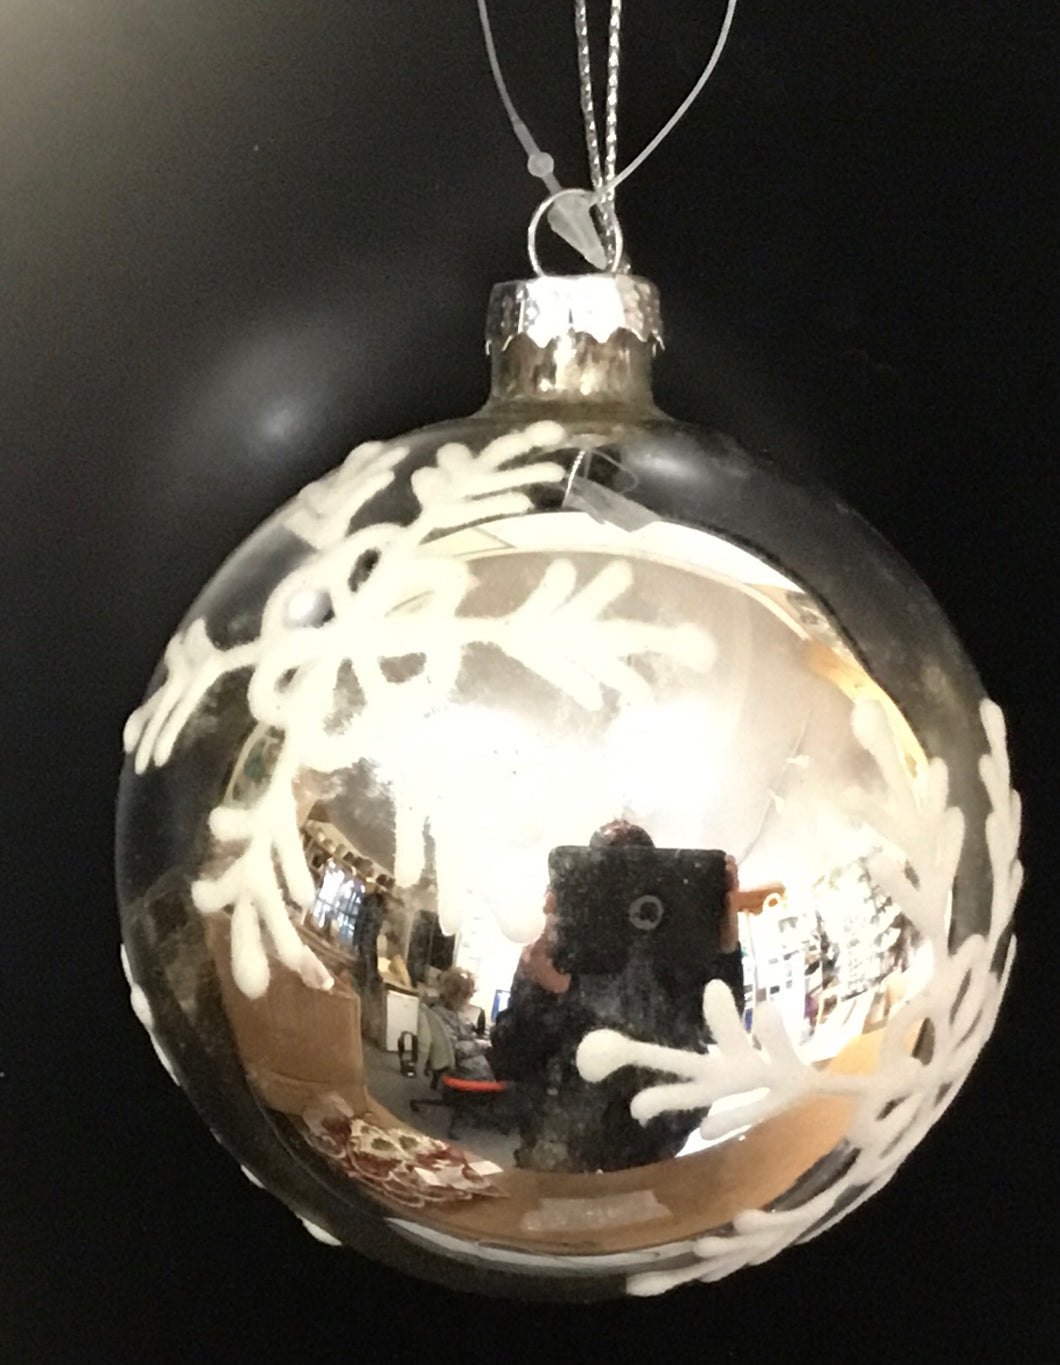 Silver metallic glass bauble with snowflake design